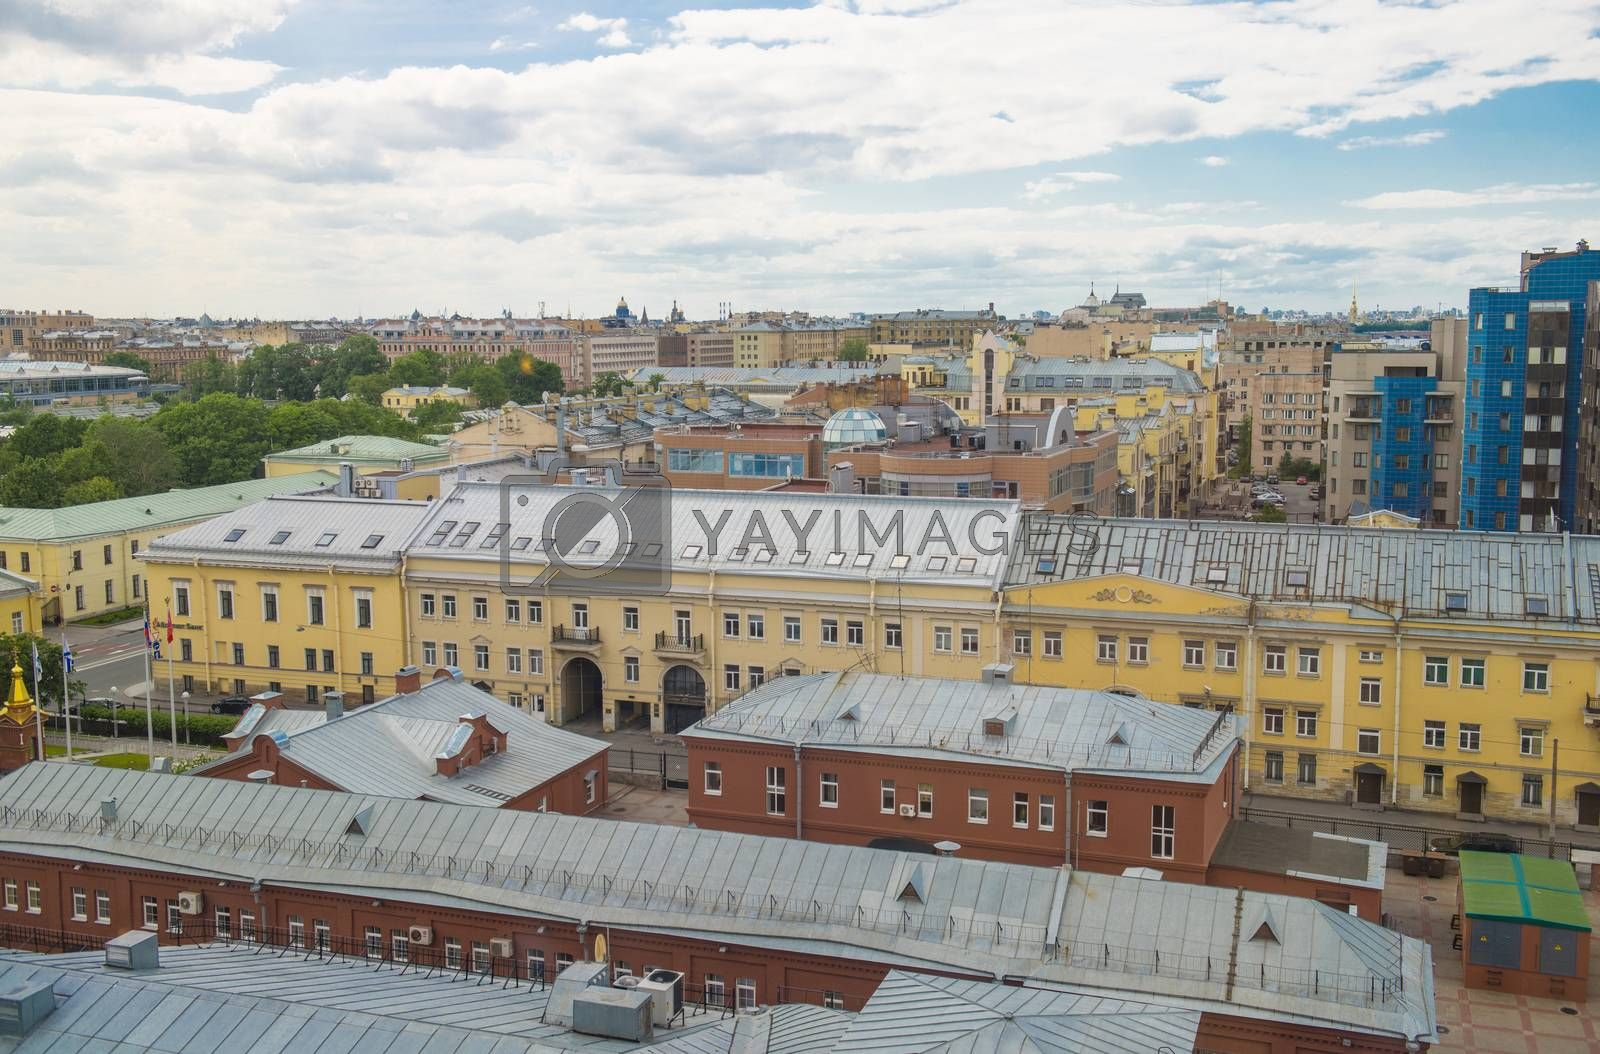 The view of the roofs of Sankt Petersburg, Russia